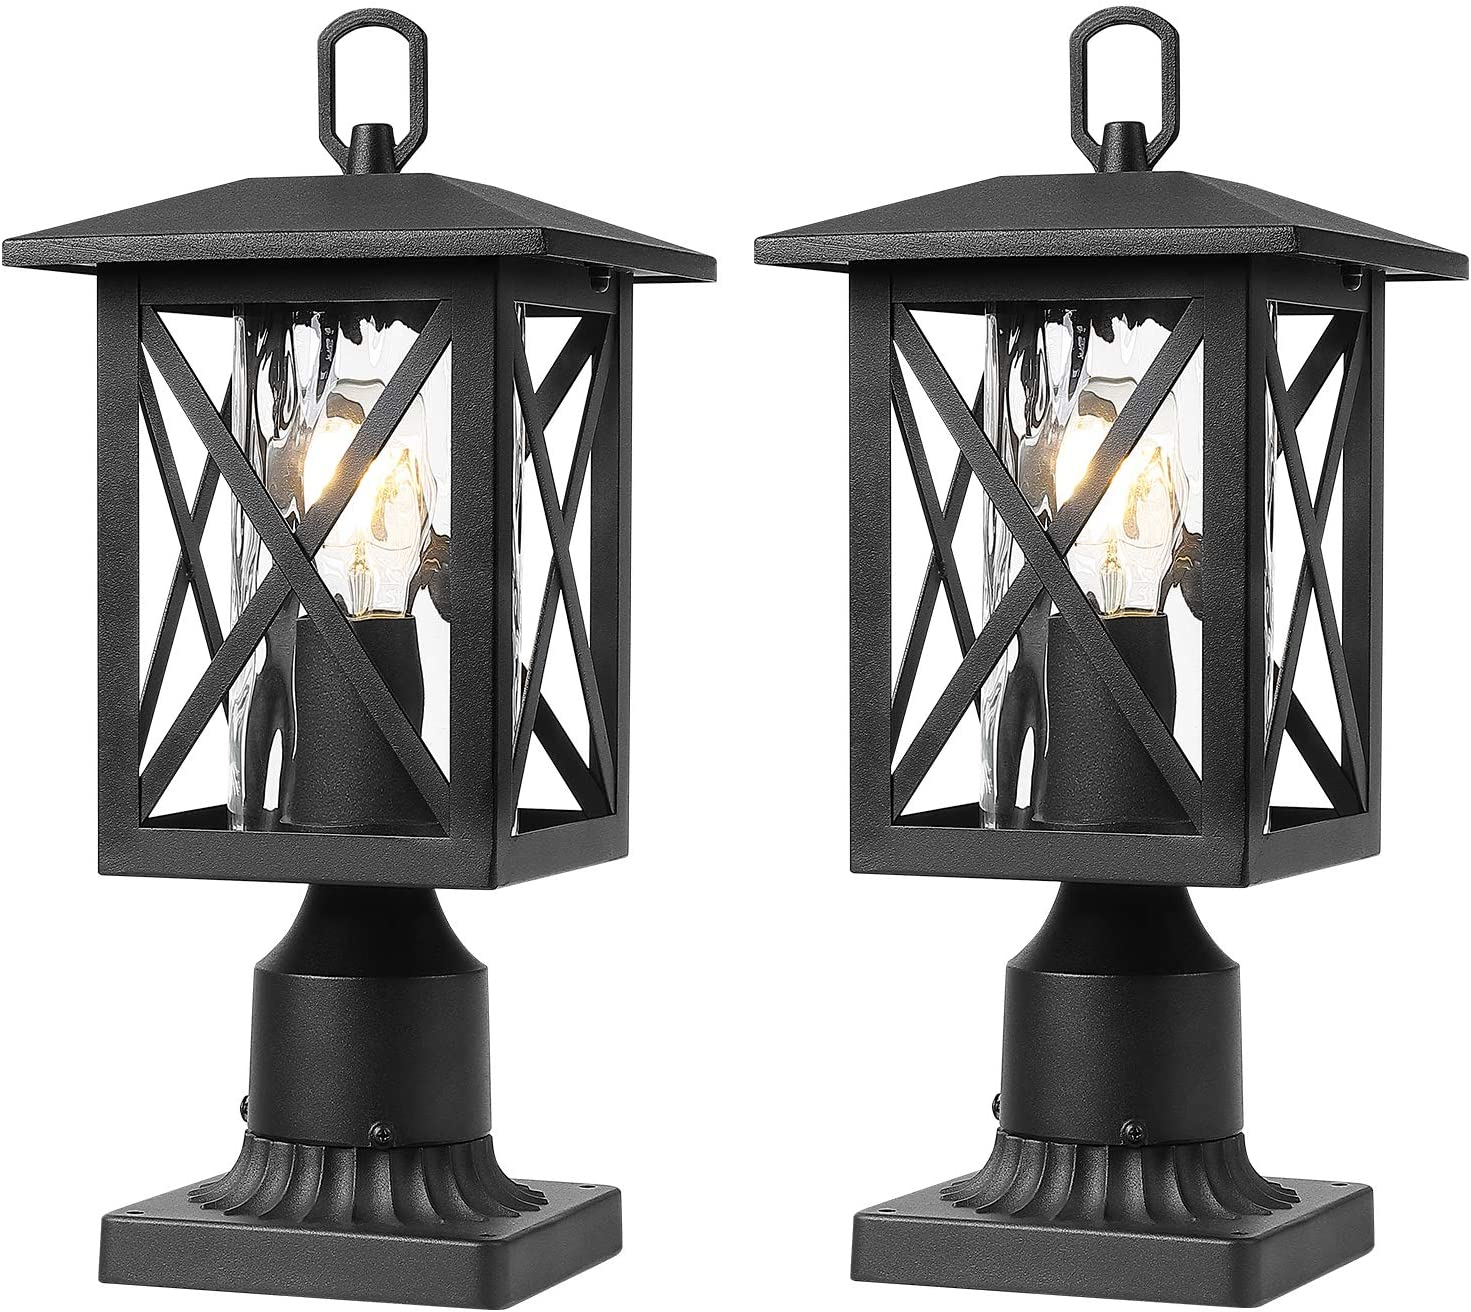 Beionxii Outdoor Post Light Fixtures | Twin Pack Exterior Post Lantern Pillar Lamp with 3 Inch Pier Mount Adapter, Sand Textured Black with Water Rippled Glass - A330P-2PK